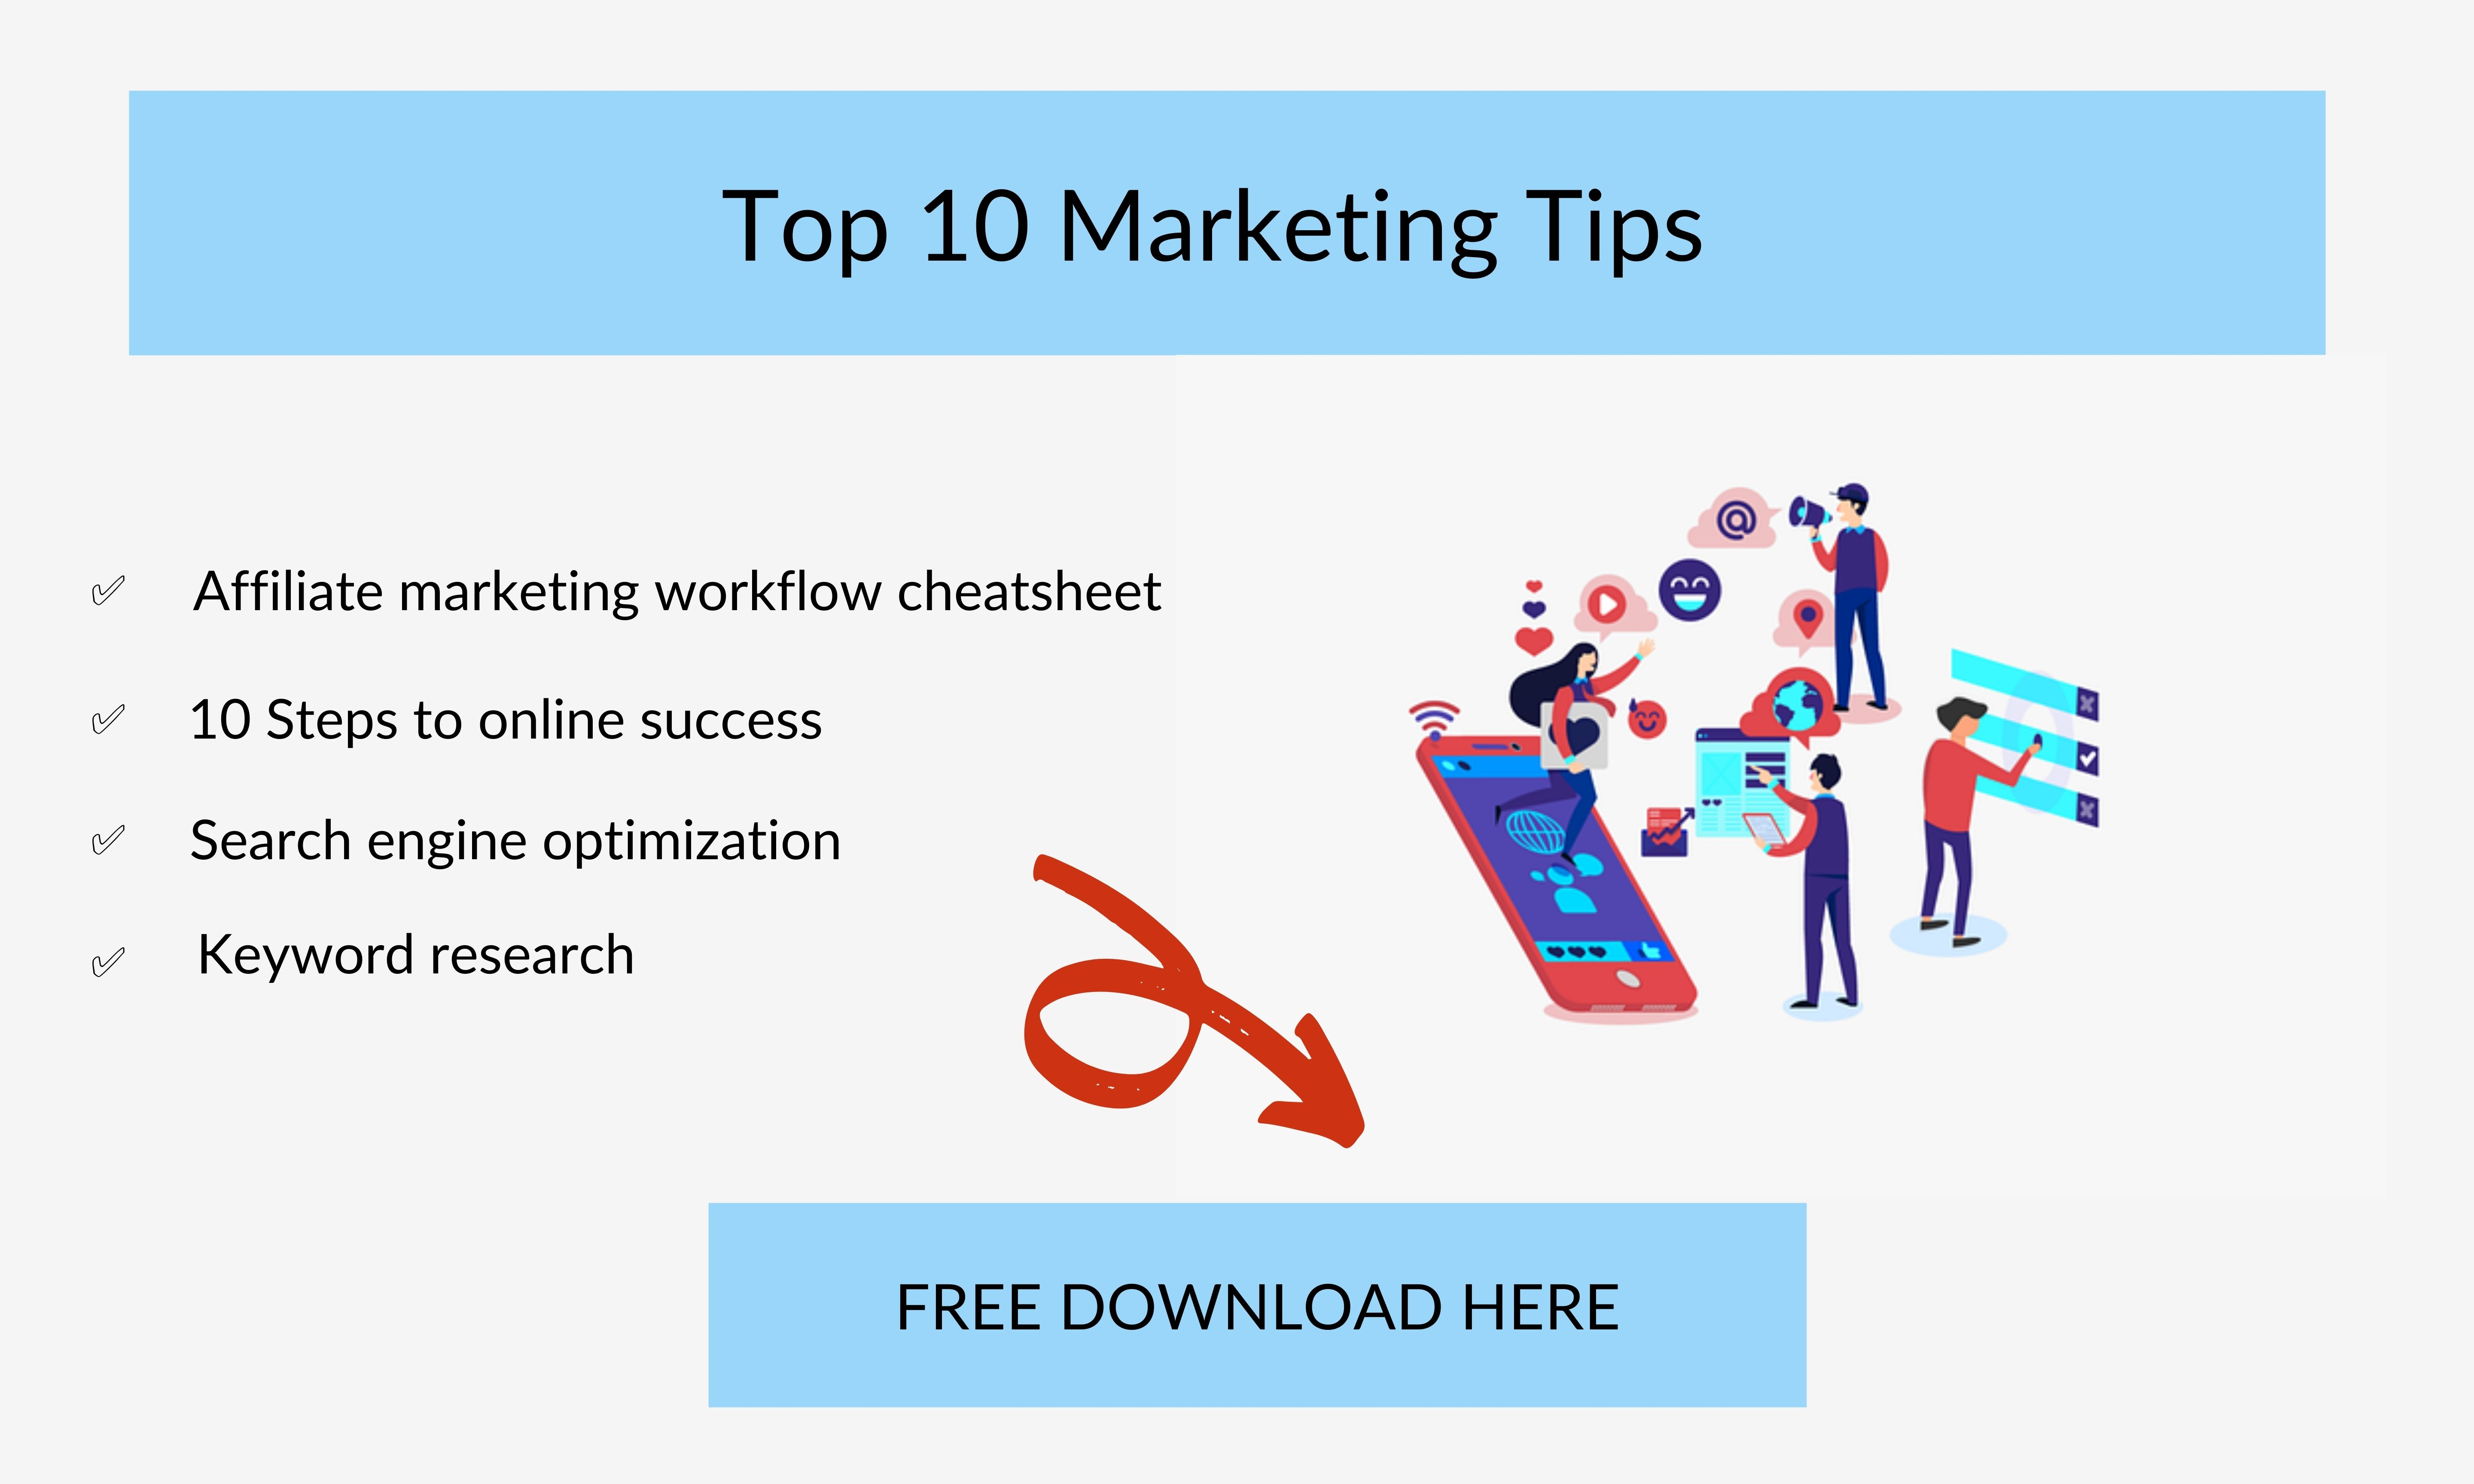 Create A Content Marketing Strategy - 10 Marketing Tips Banner